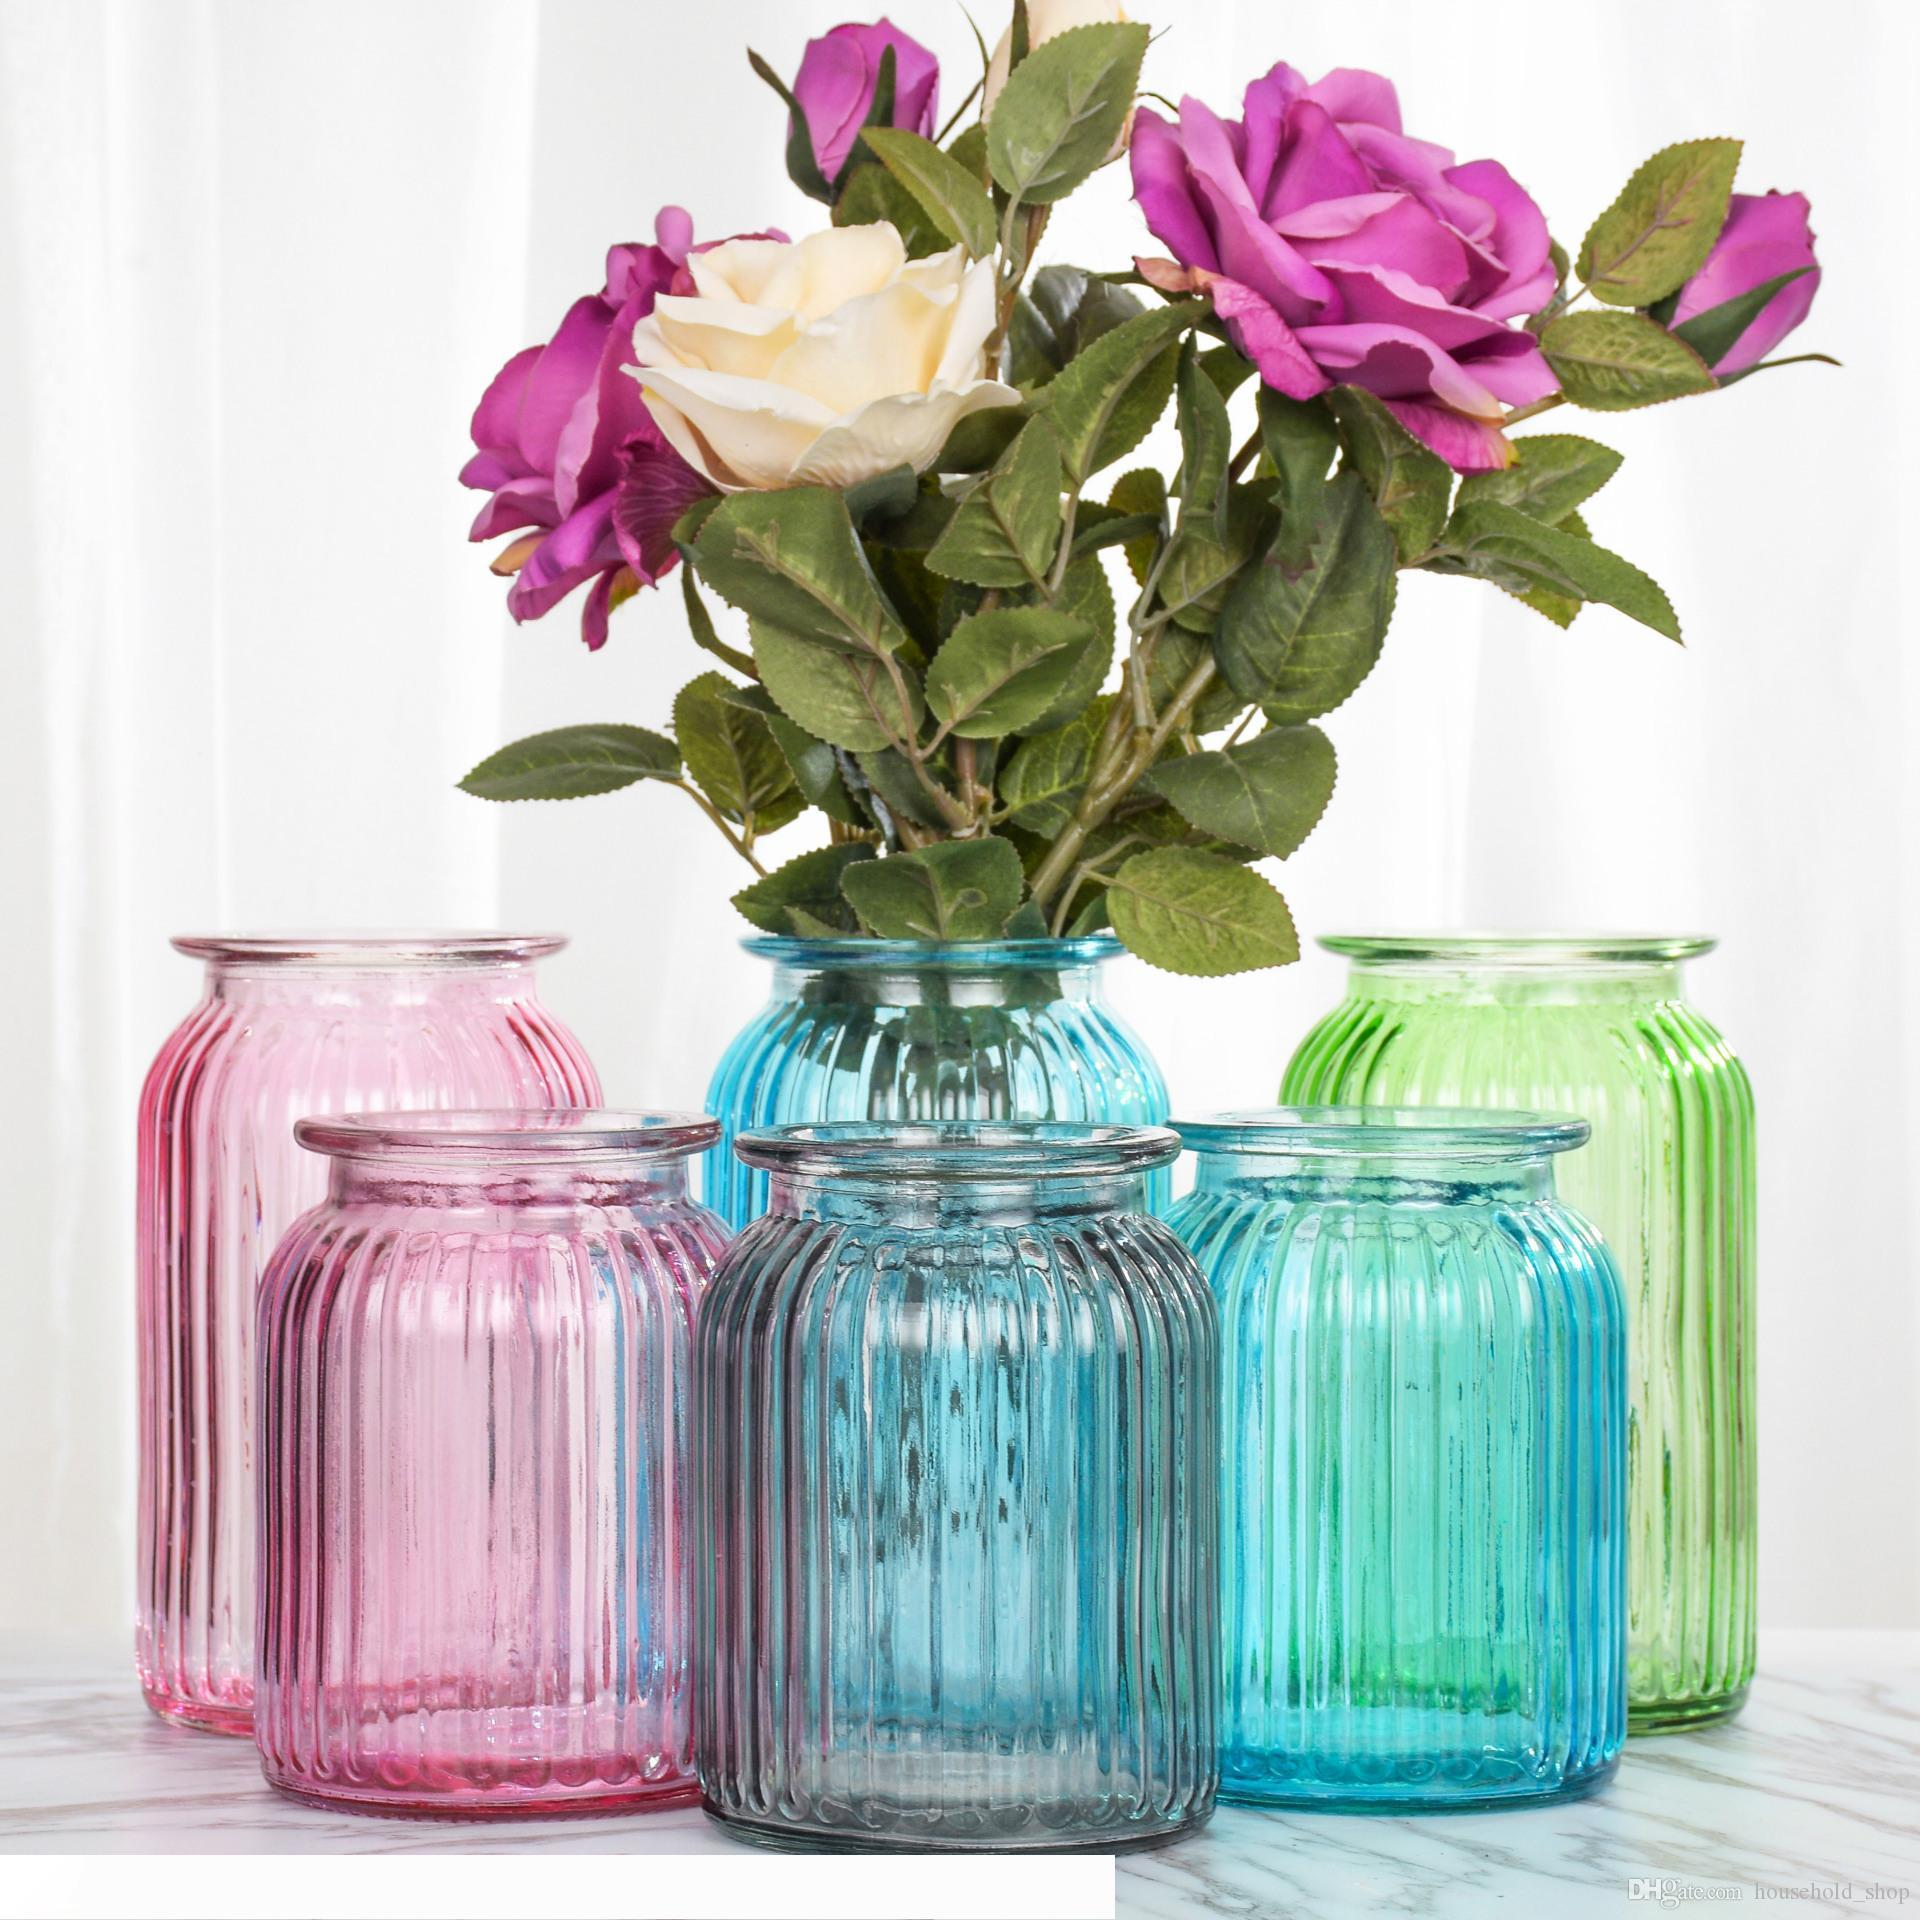 Home Glass Vases Flower Vase Home Decoration Flower Pots For Home Wedding Party Office Tabletop Vase Hot Sale Long Glass Vases For Cheap Long Tall Vases From Boutiquewig01 56 61 Dhgate Com